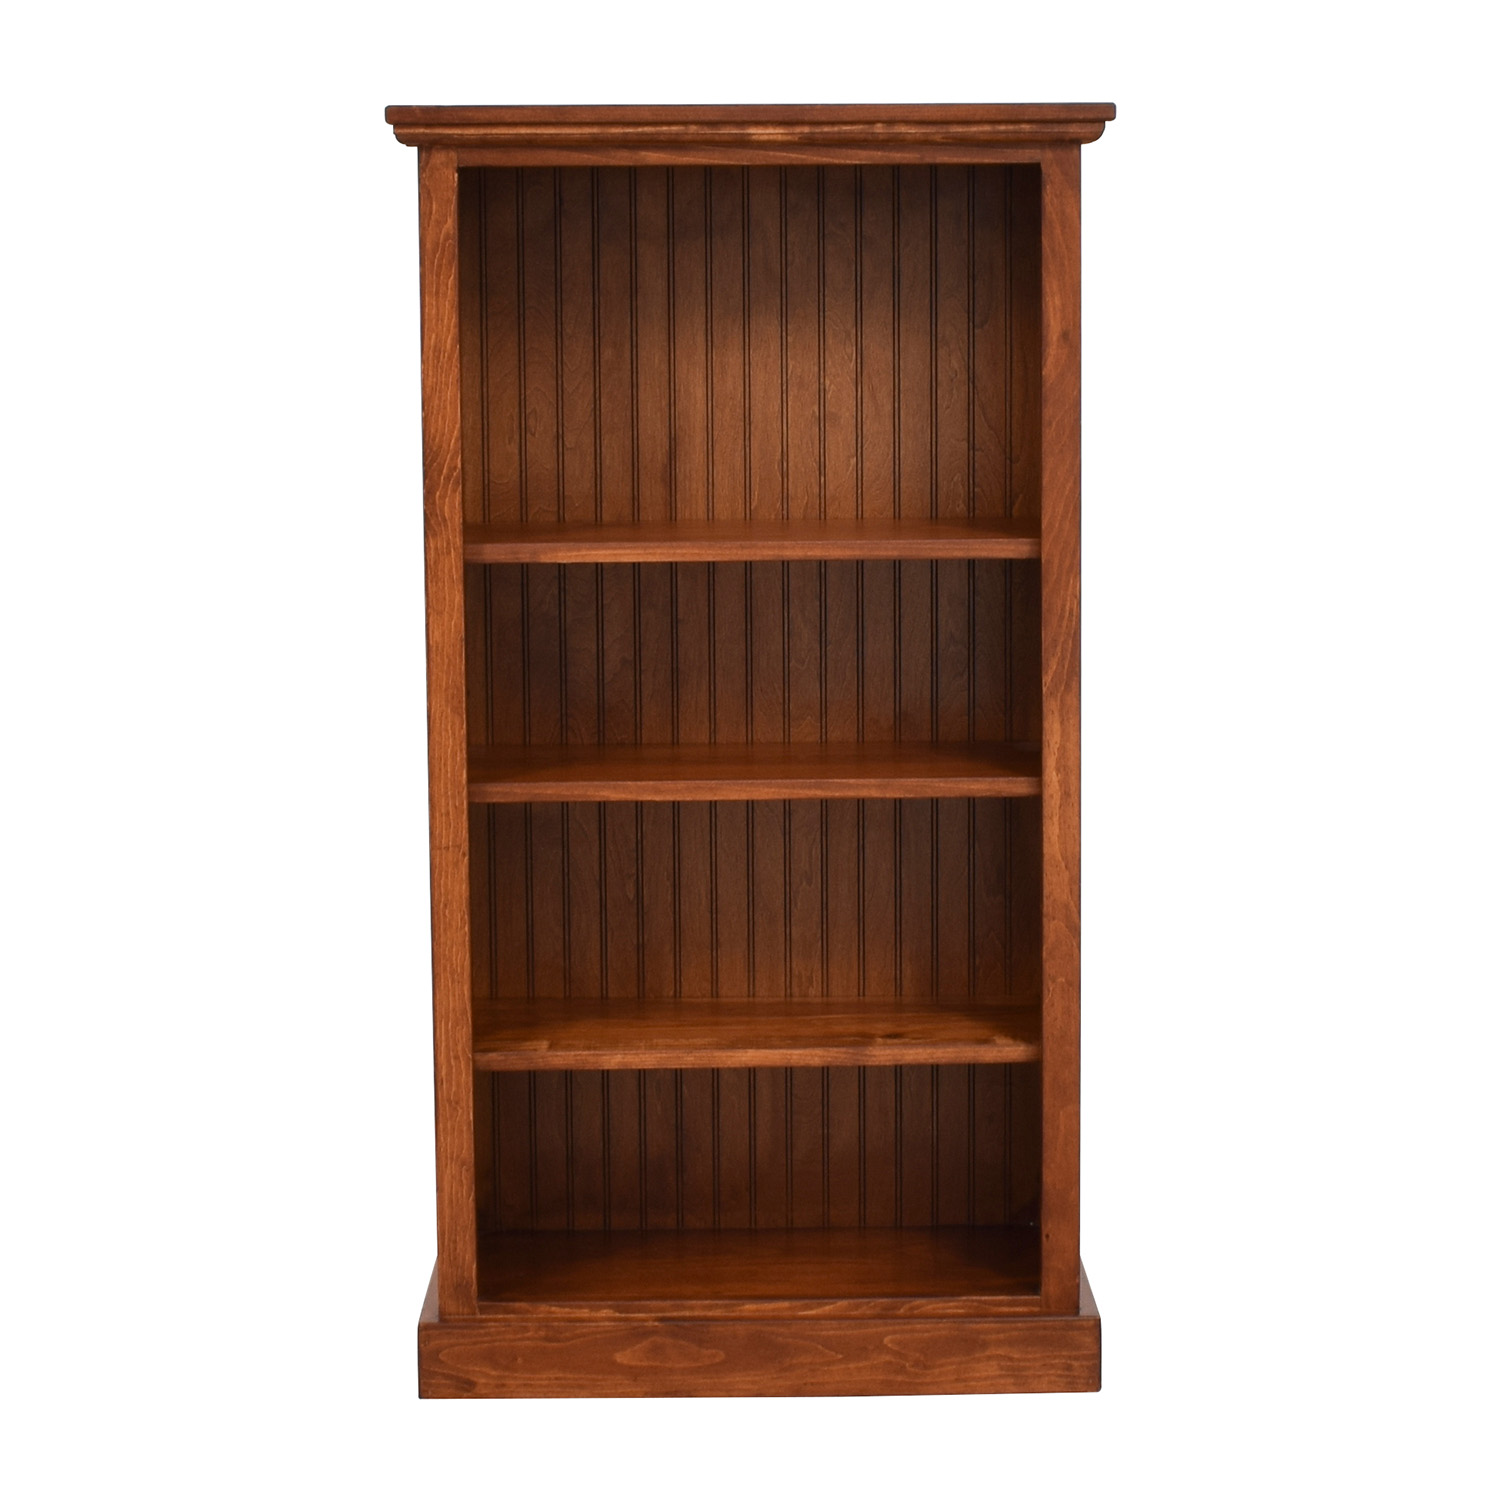 Incroyable Gothic Cabinet Craft Gothic Cabinet Craft Four Shelf Bookcase For Sale ...